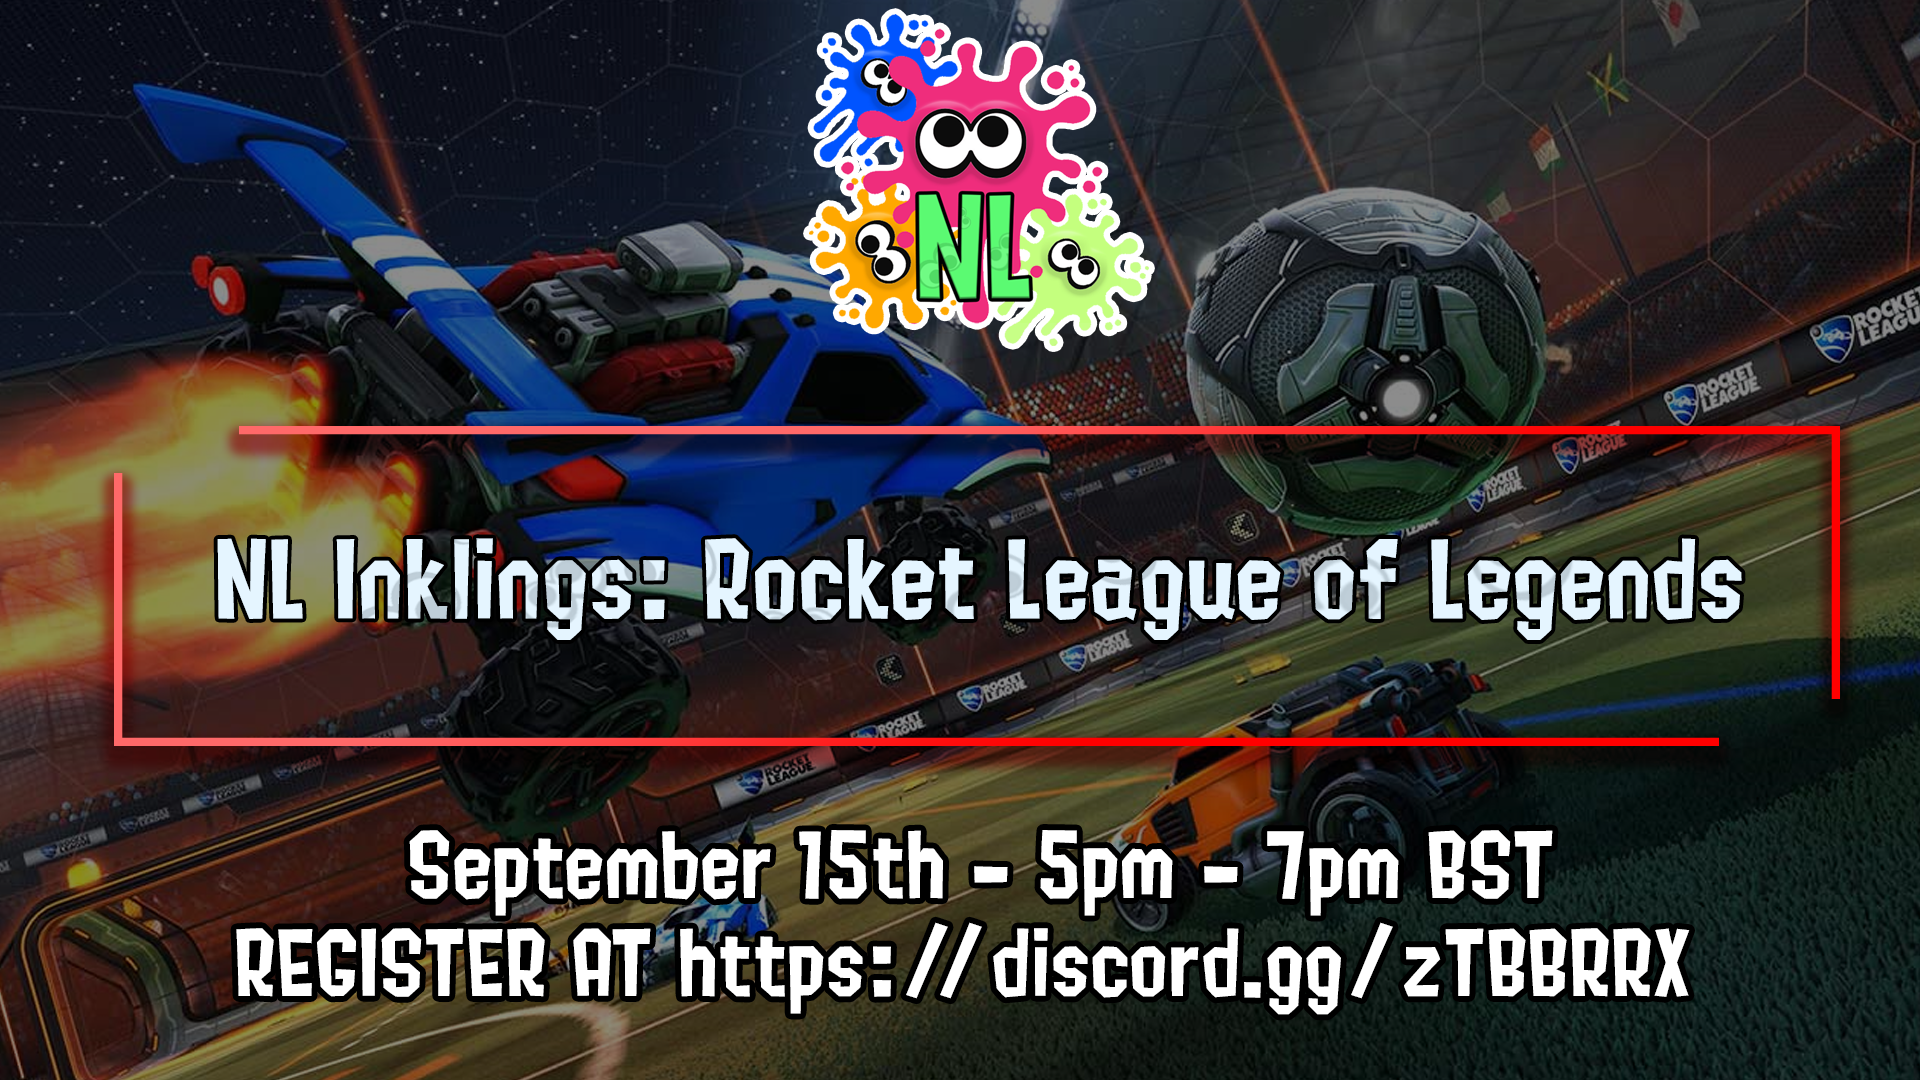 Another special tournament from the NL Inklings!